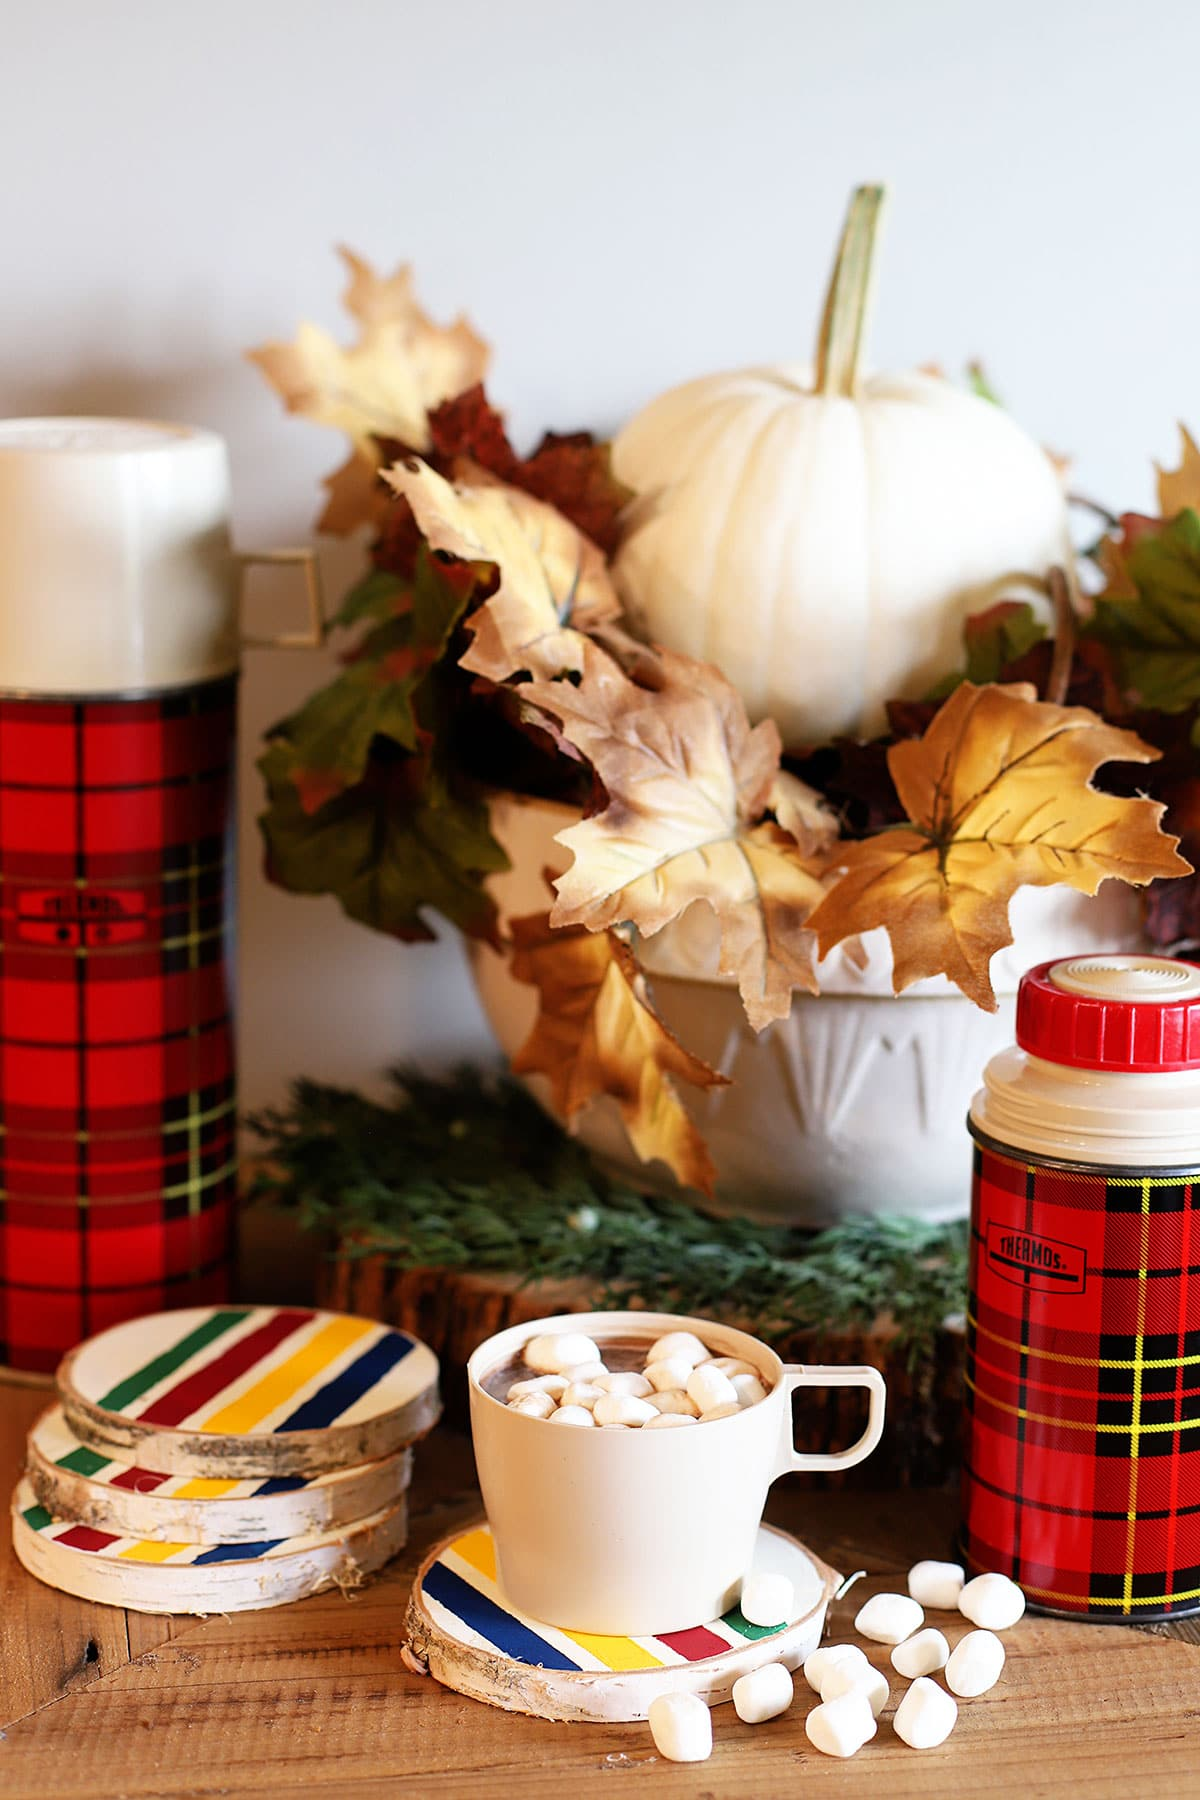 DIY fall coasters with Hudson Bay blanket design